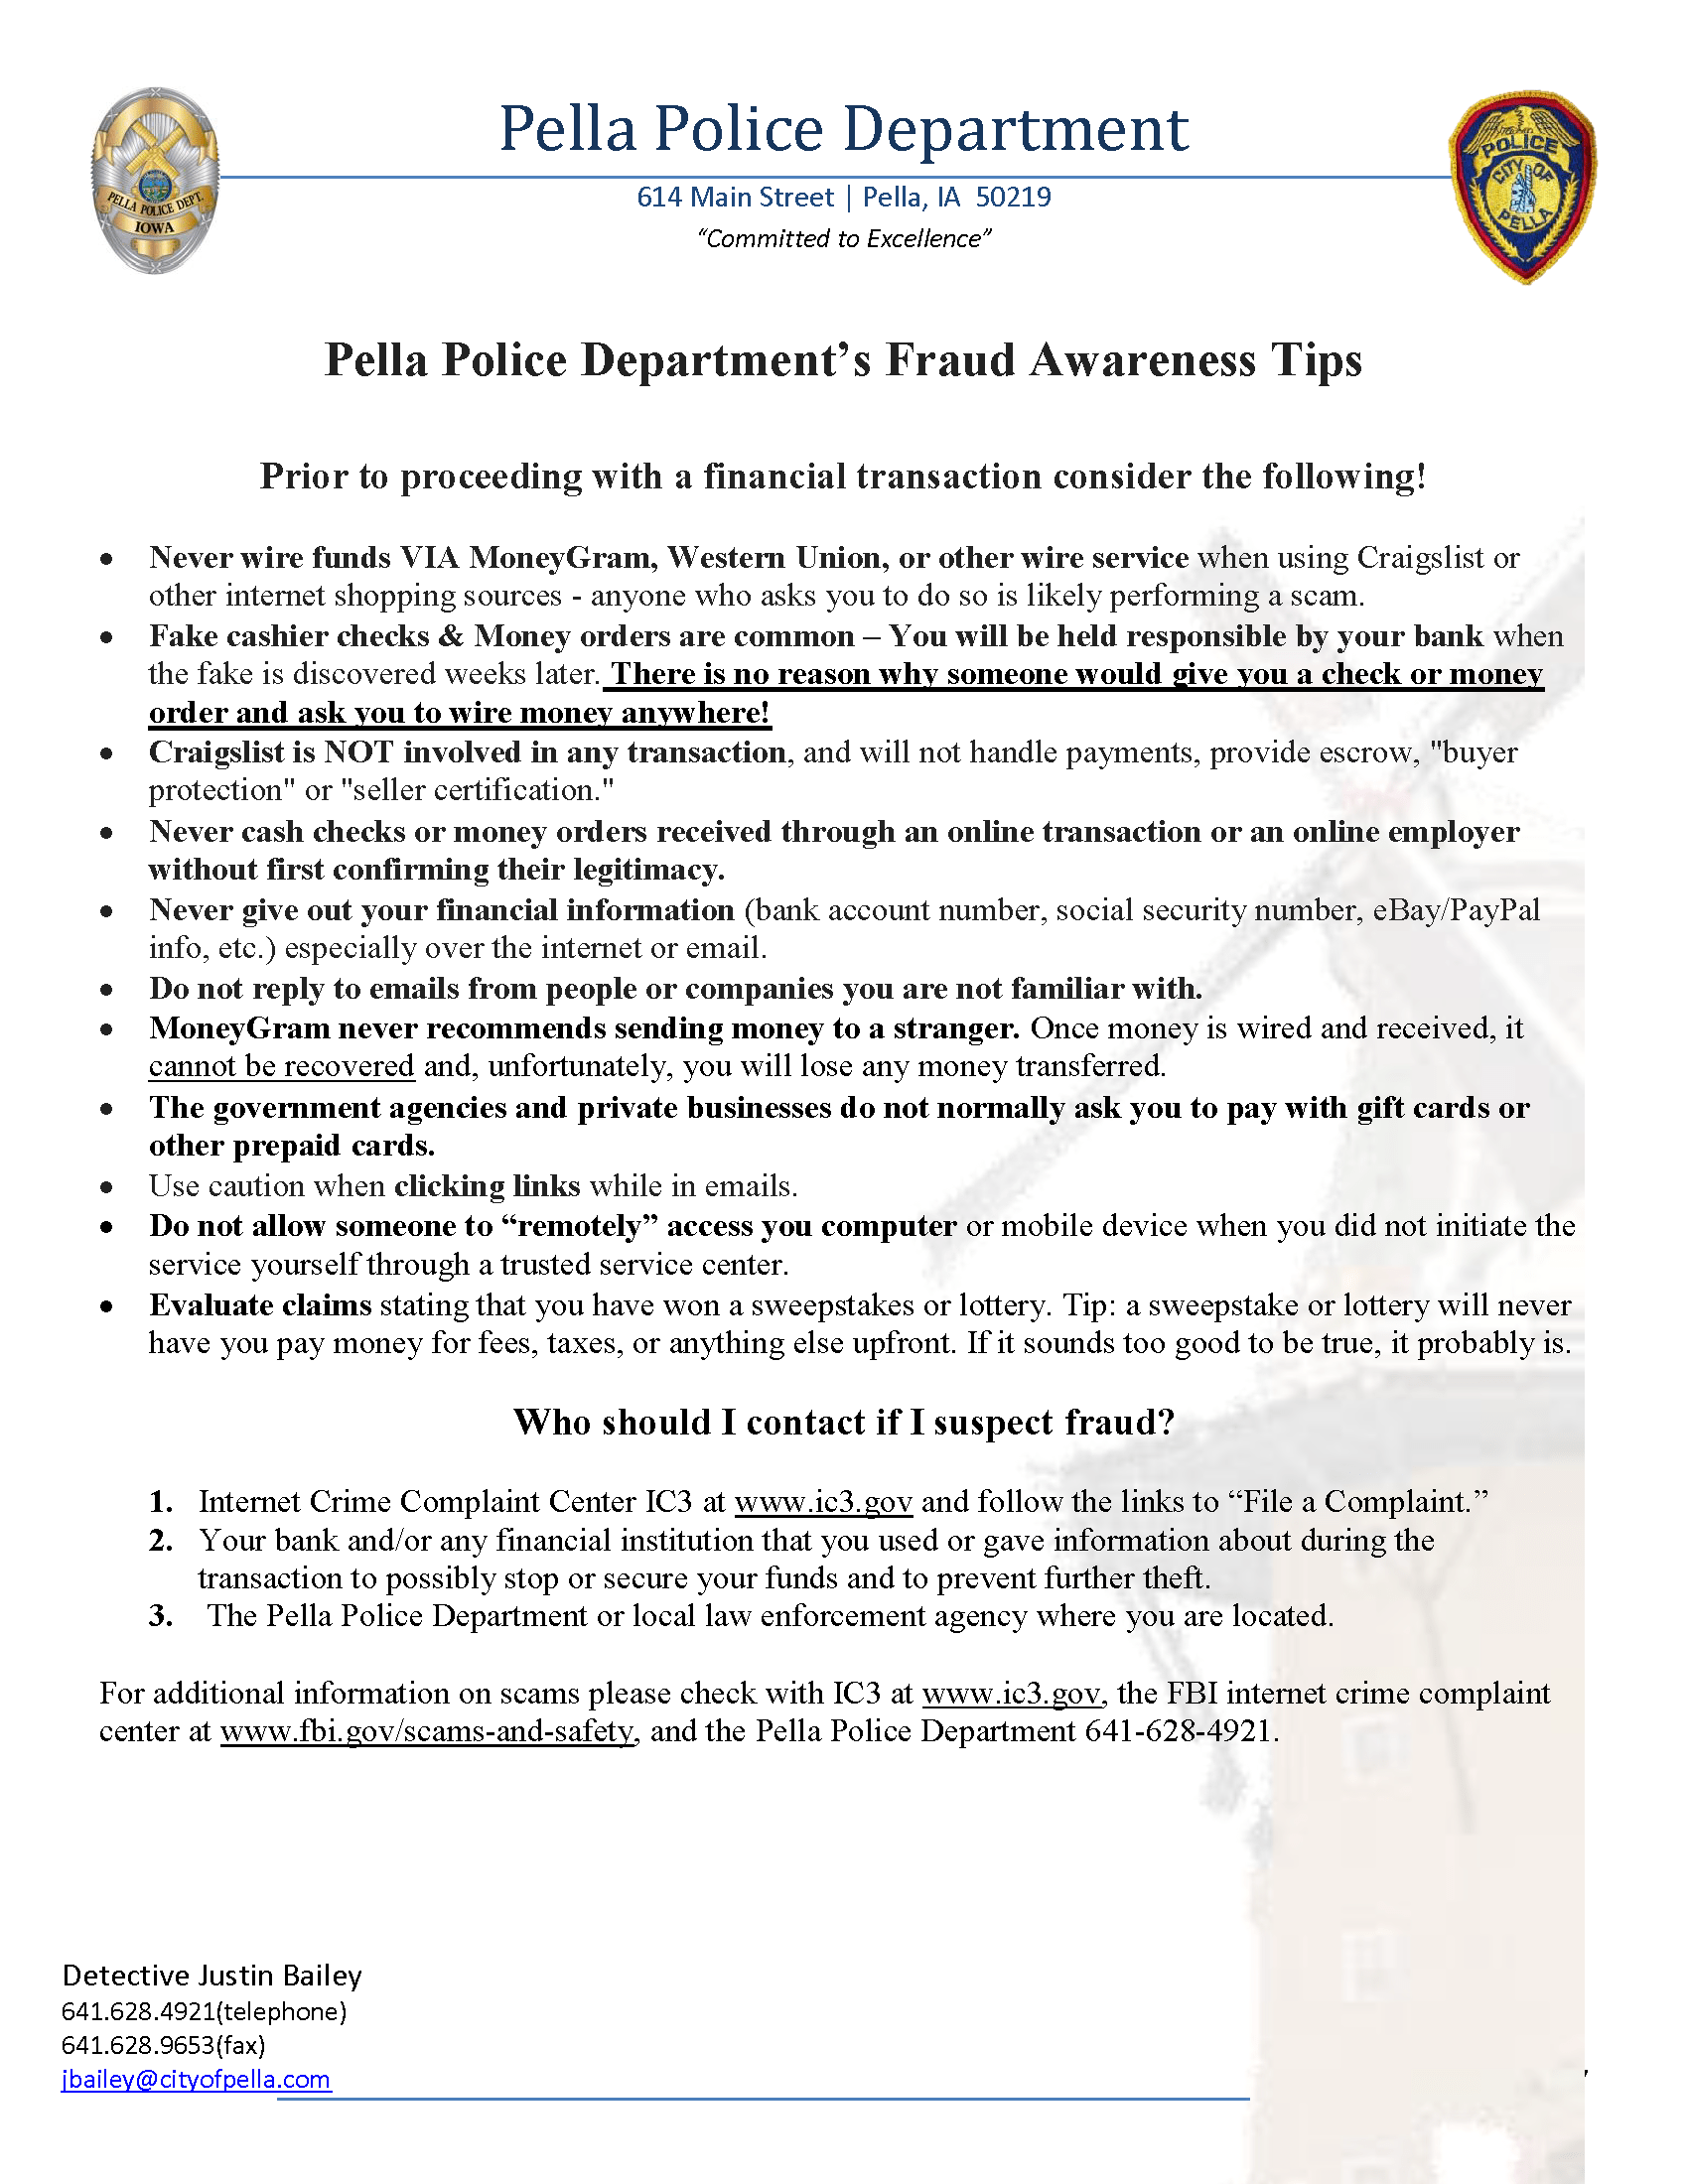 Pella Police Dept Fraud Tips Page 1